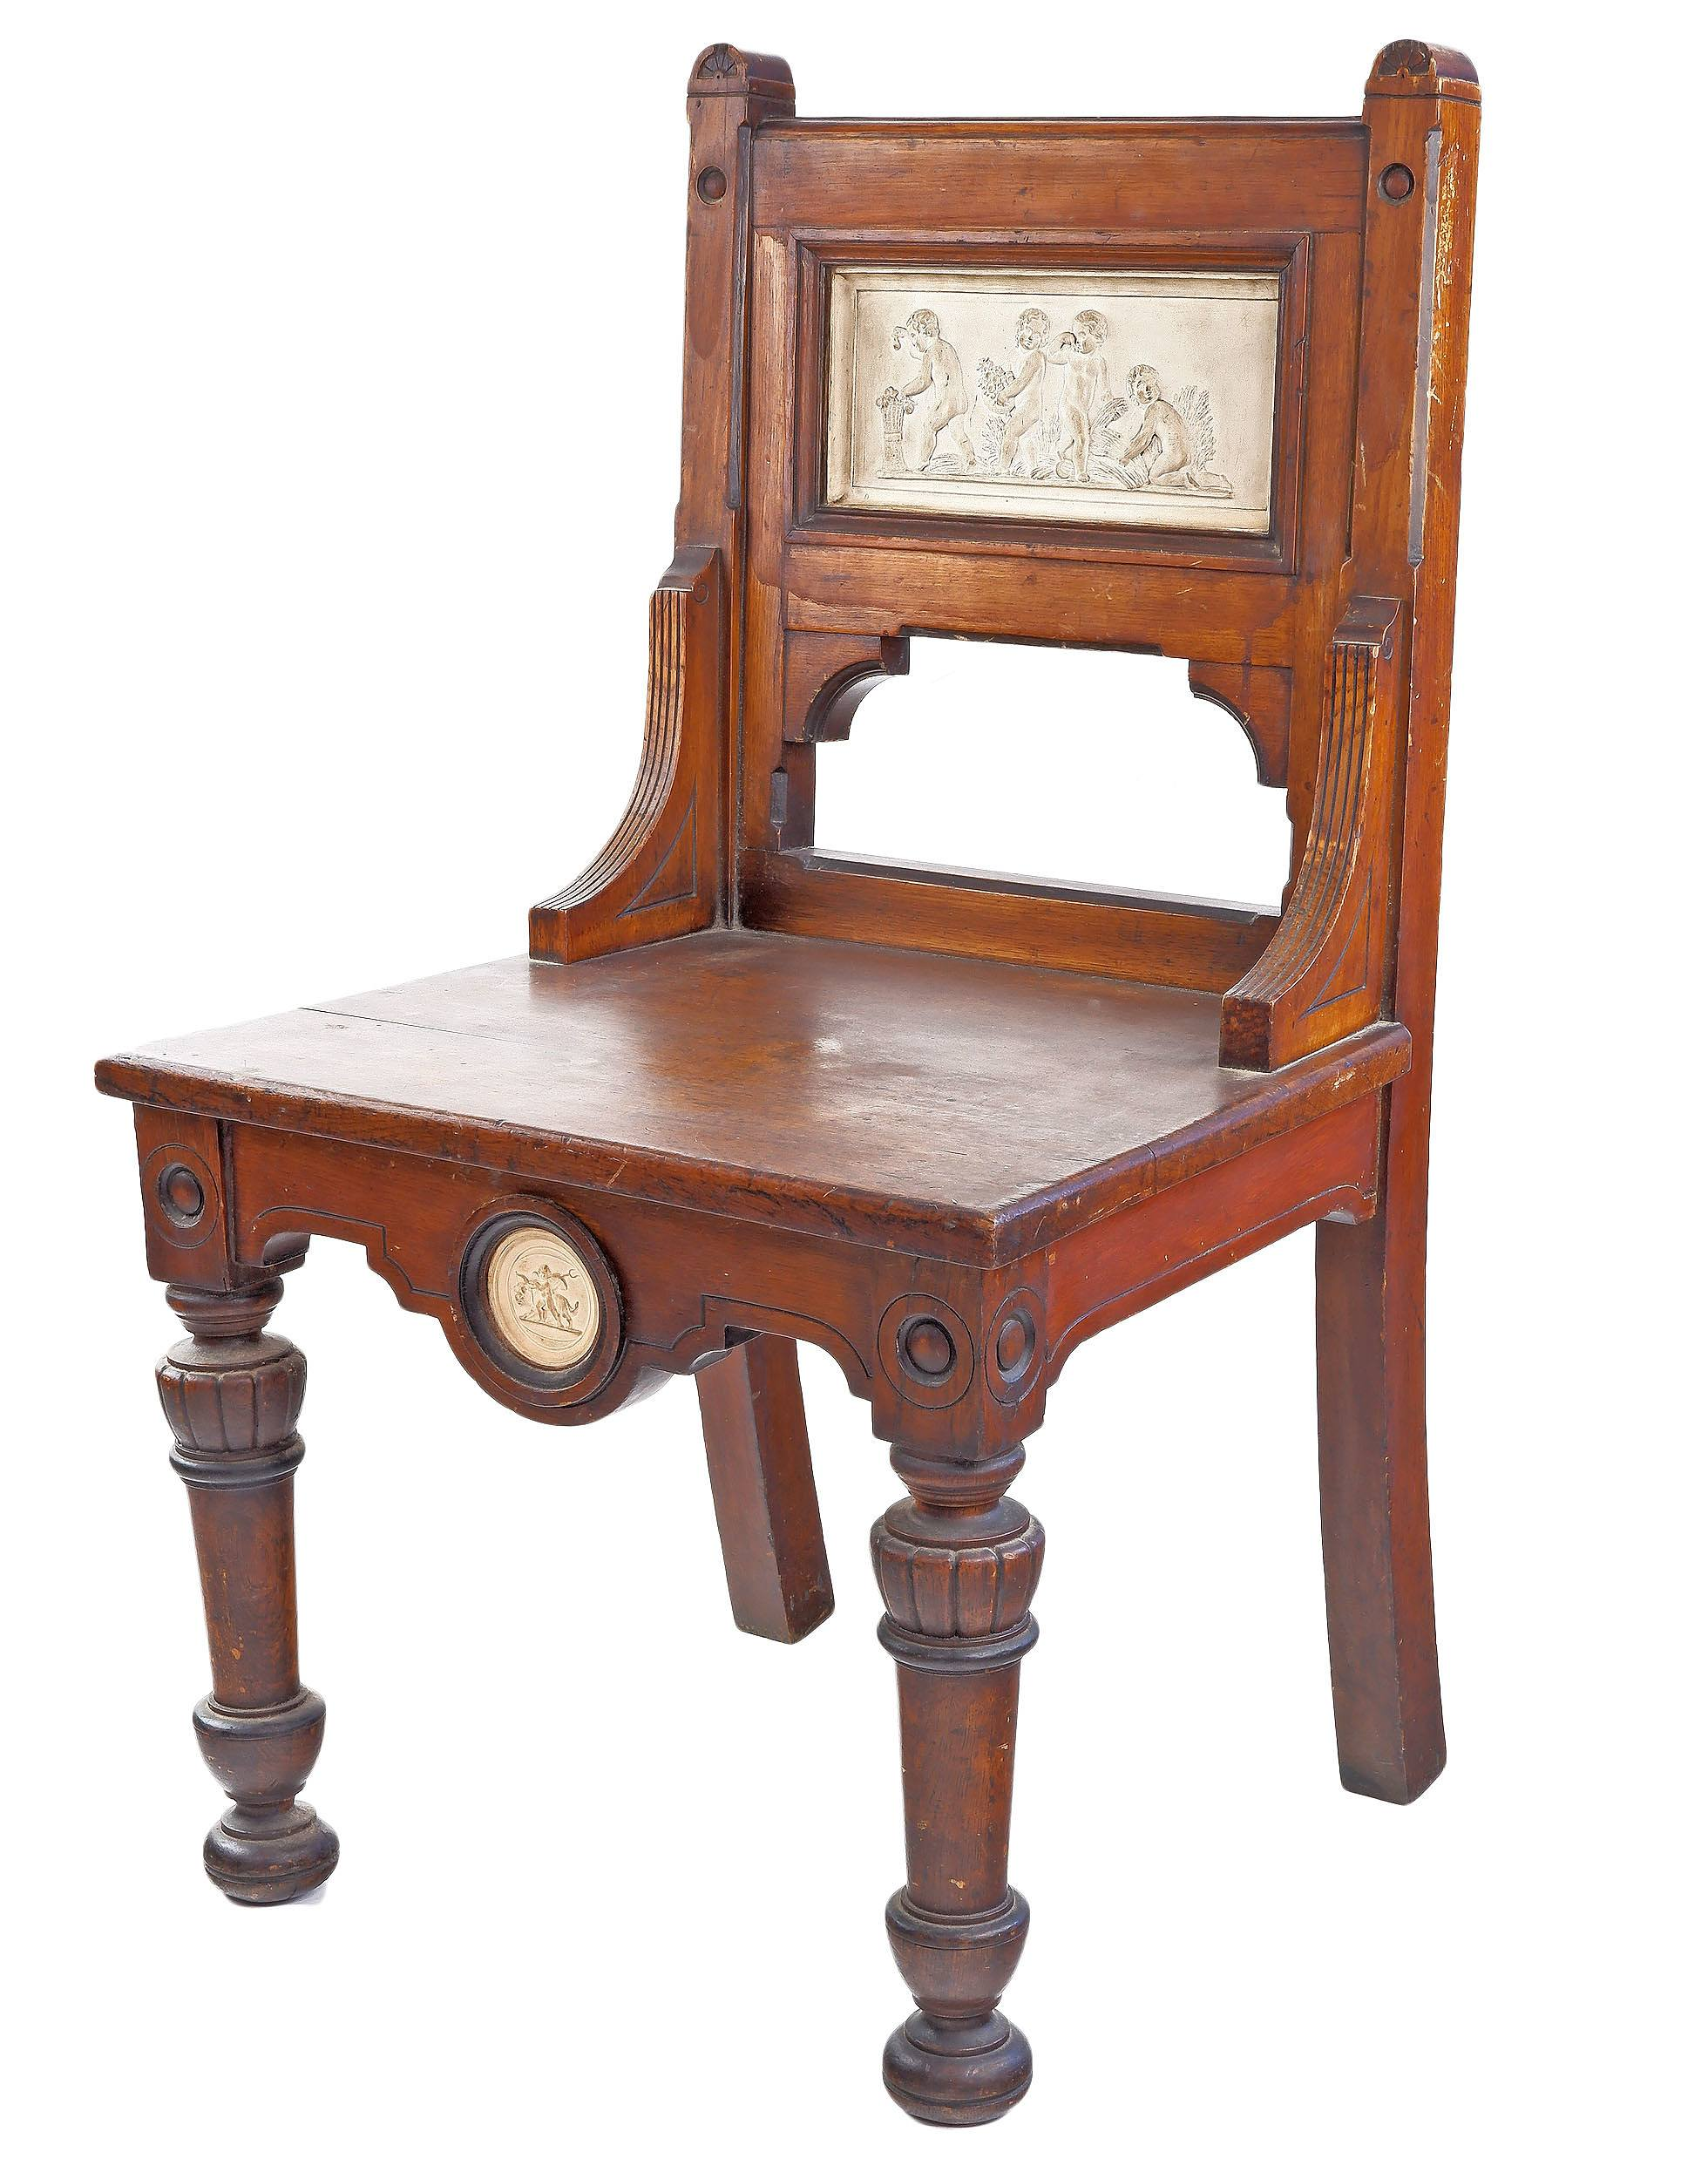 'English Gothic Revival Mahogany Hall Chair Inset with Bas Relief Ceramic Plaques, Late 19th Century'